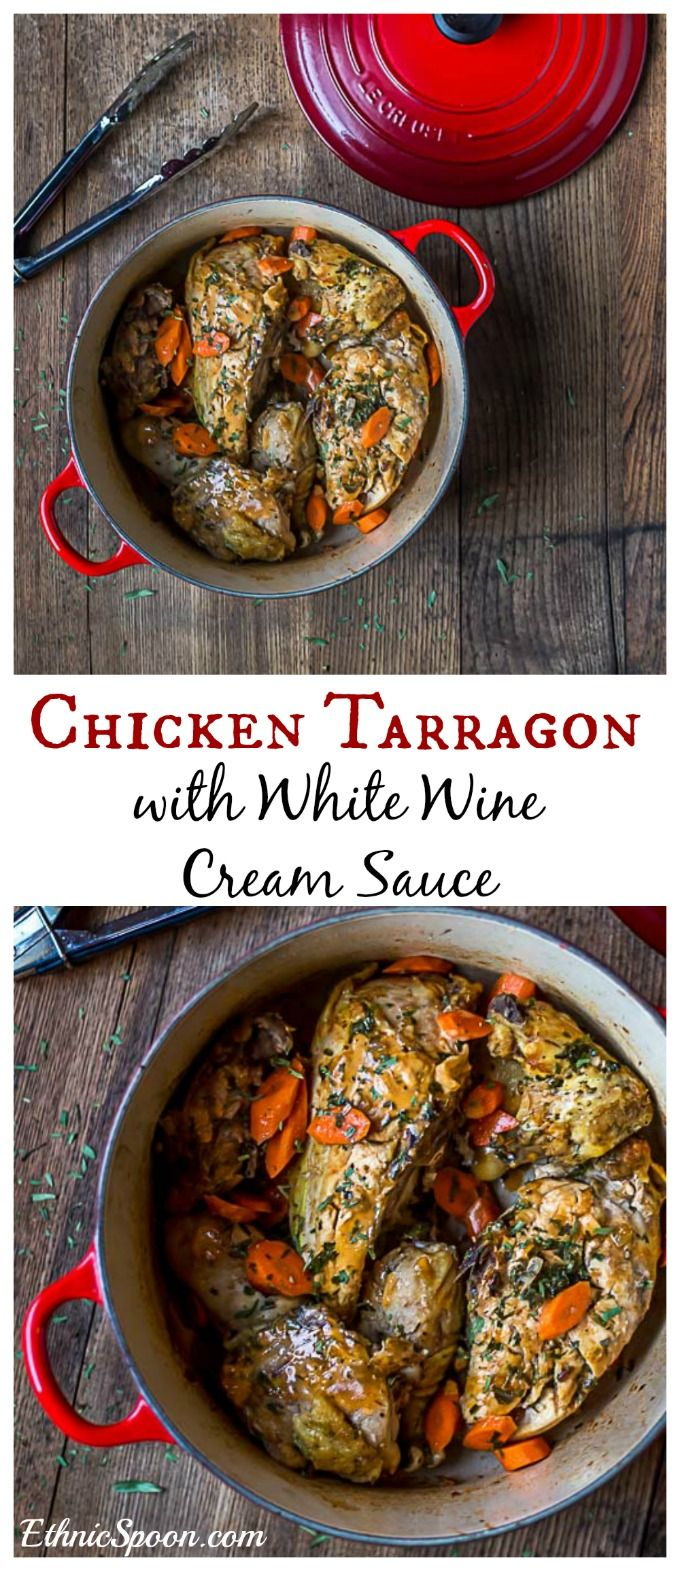 A classic French dish with a whole roaster chicken and a creamy white wine sauce.   ethnicspoon.com